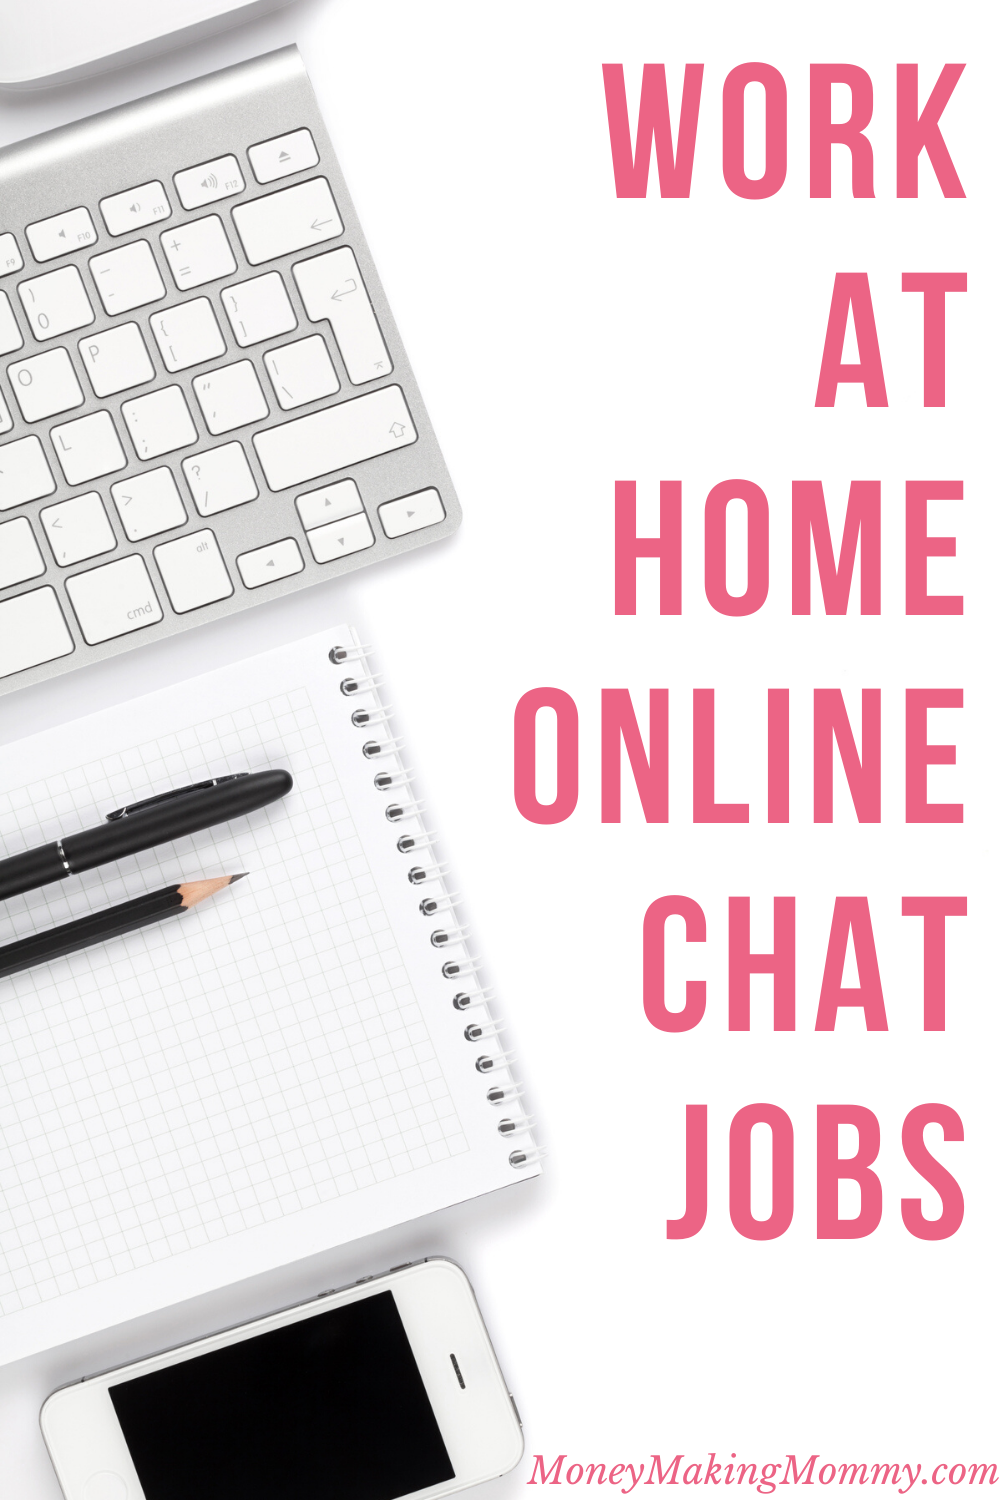 Online Chat Jobs Work at Home No Phone! Work from